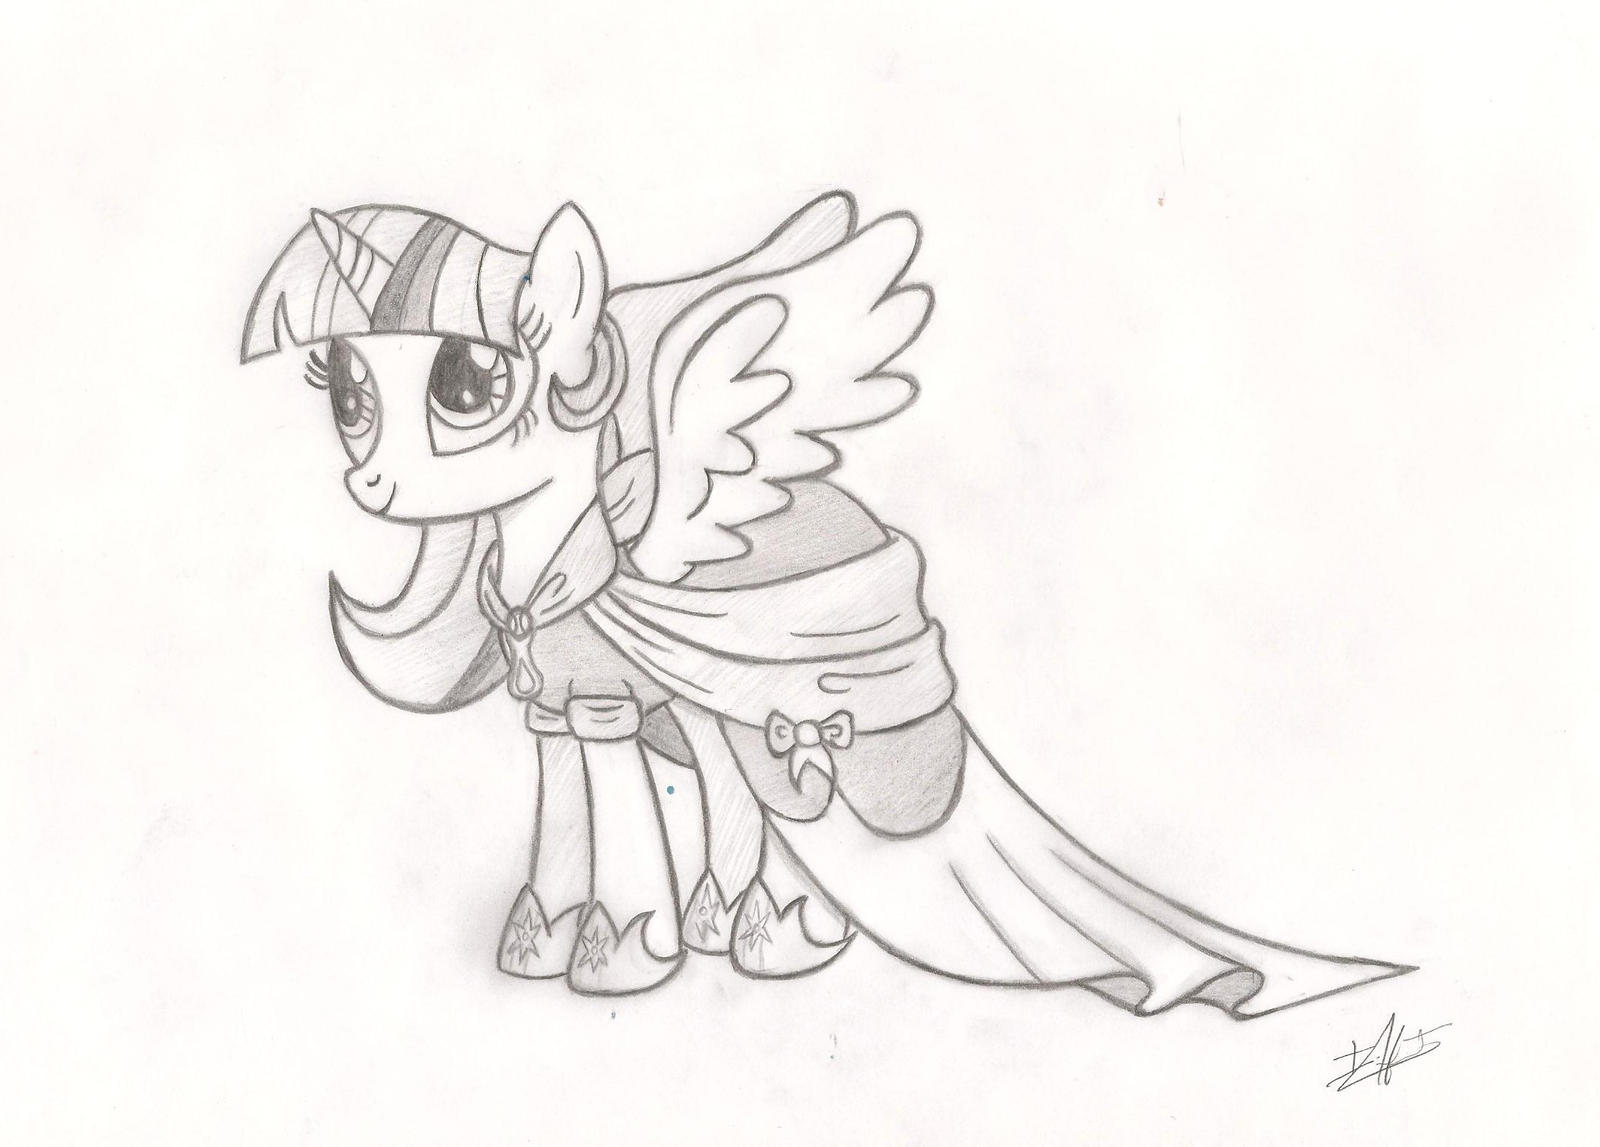 Coloring Pages Of Princess Twilight Sparkle : Princess twilight sparkle by ulisesdarklight on deviantart